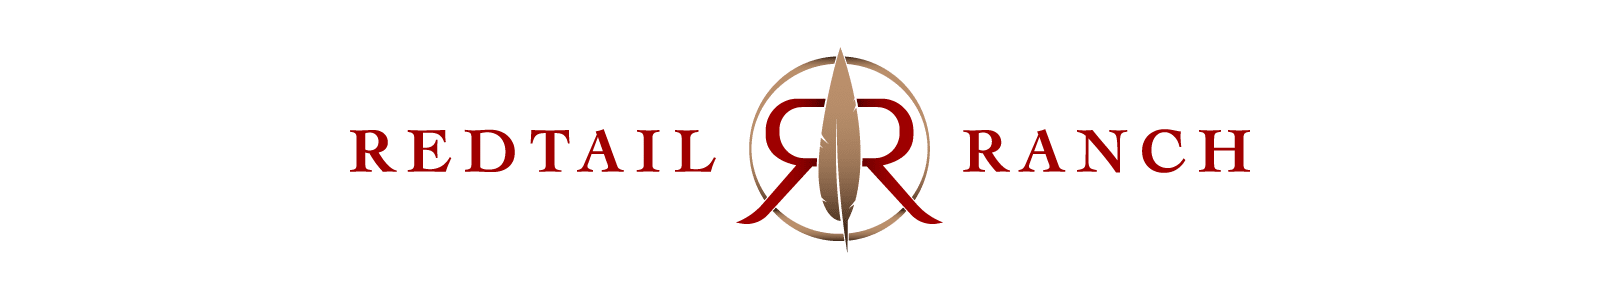 Redtail Ranch